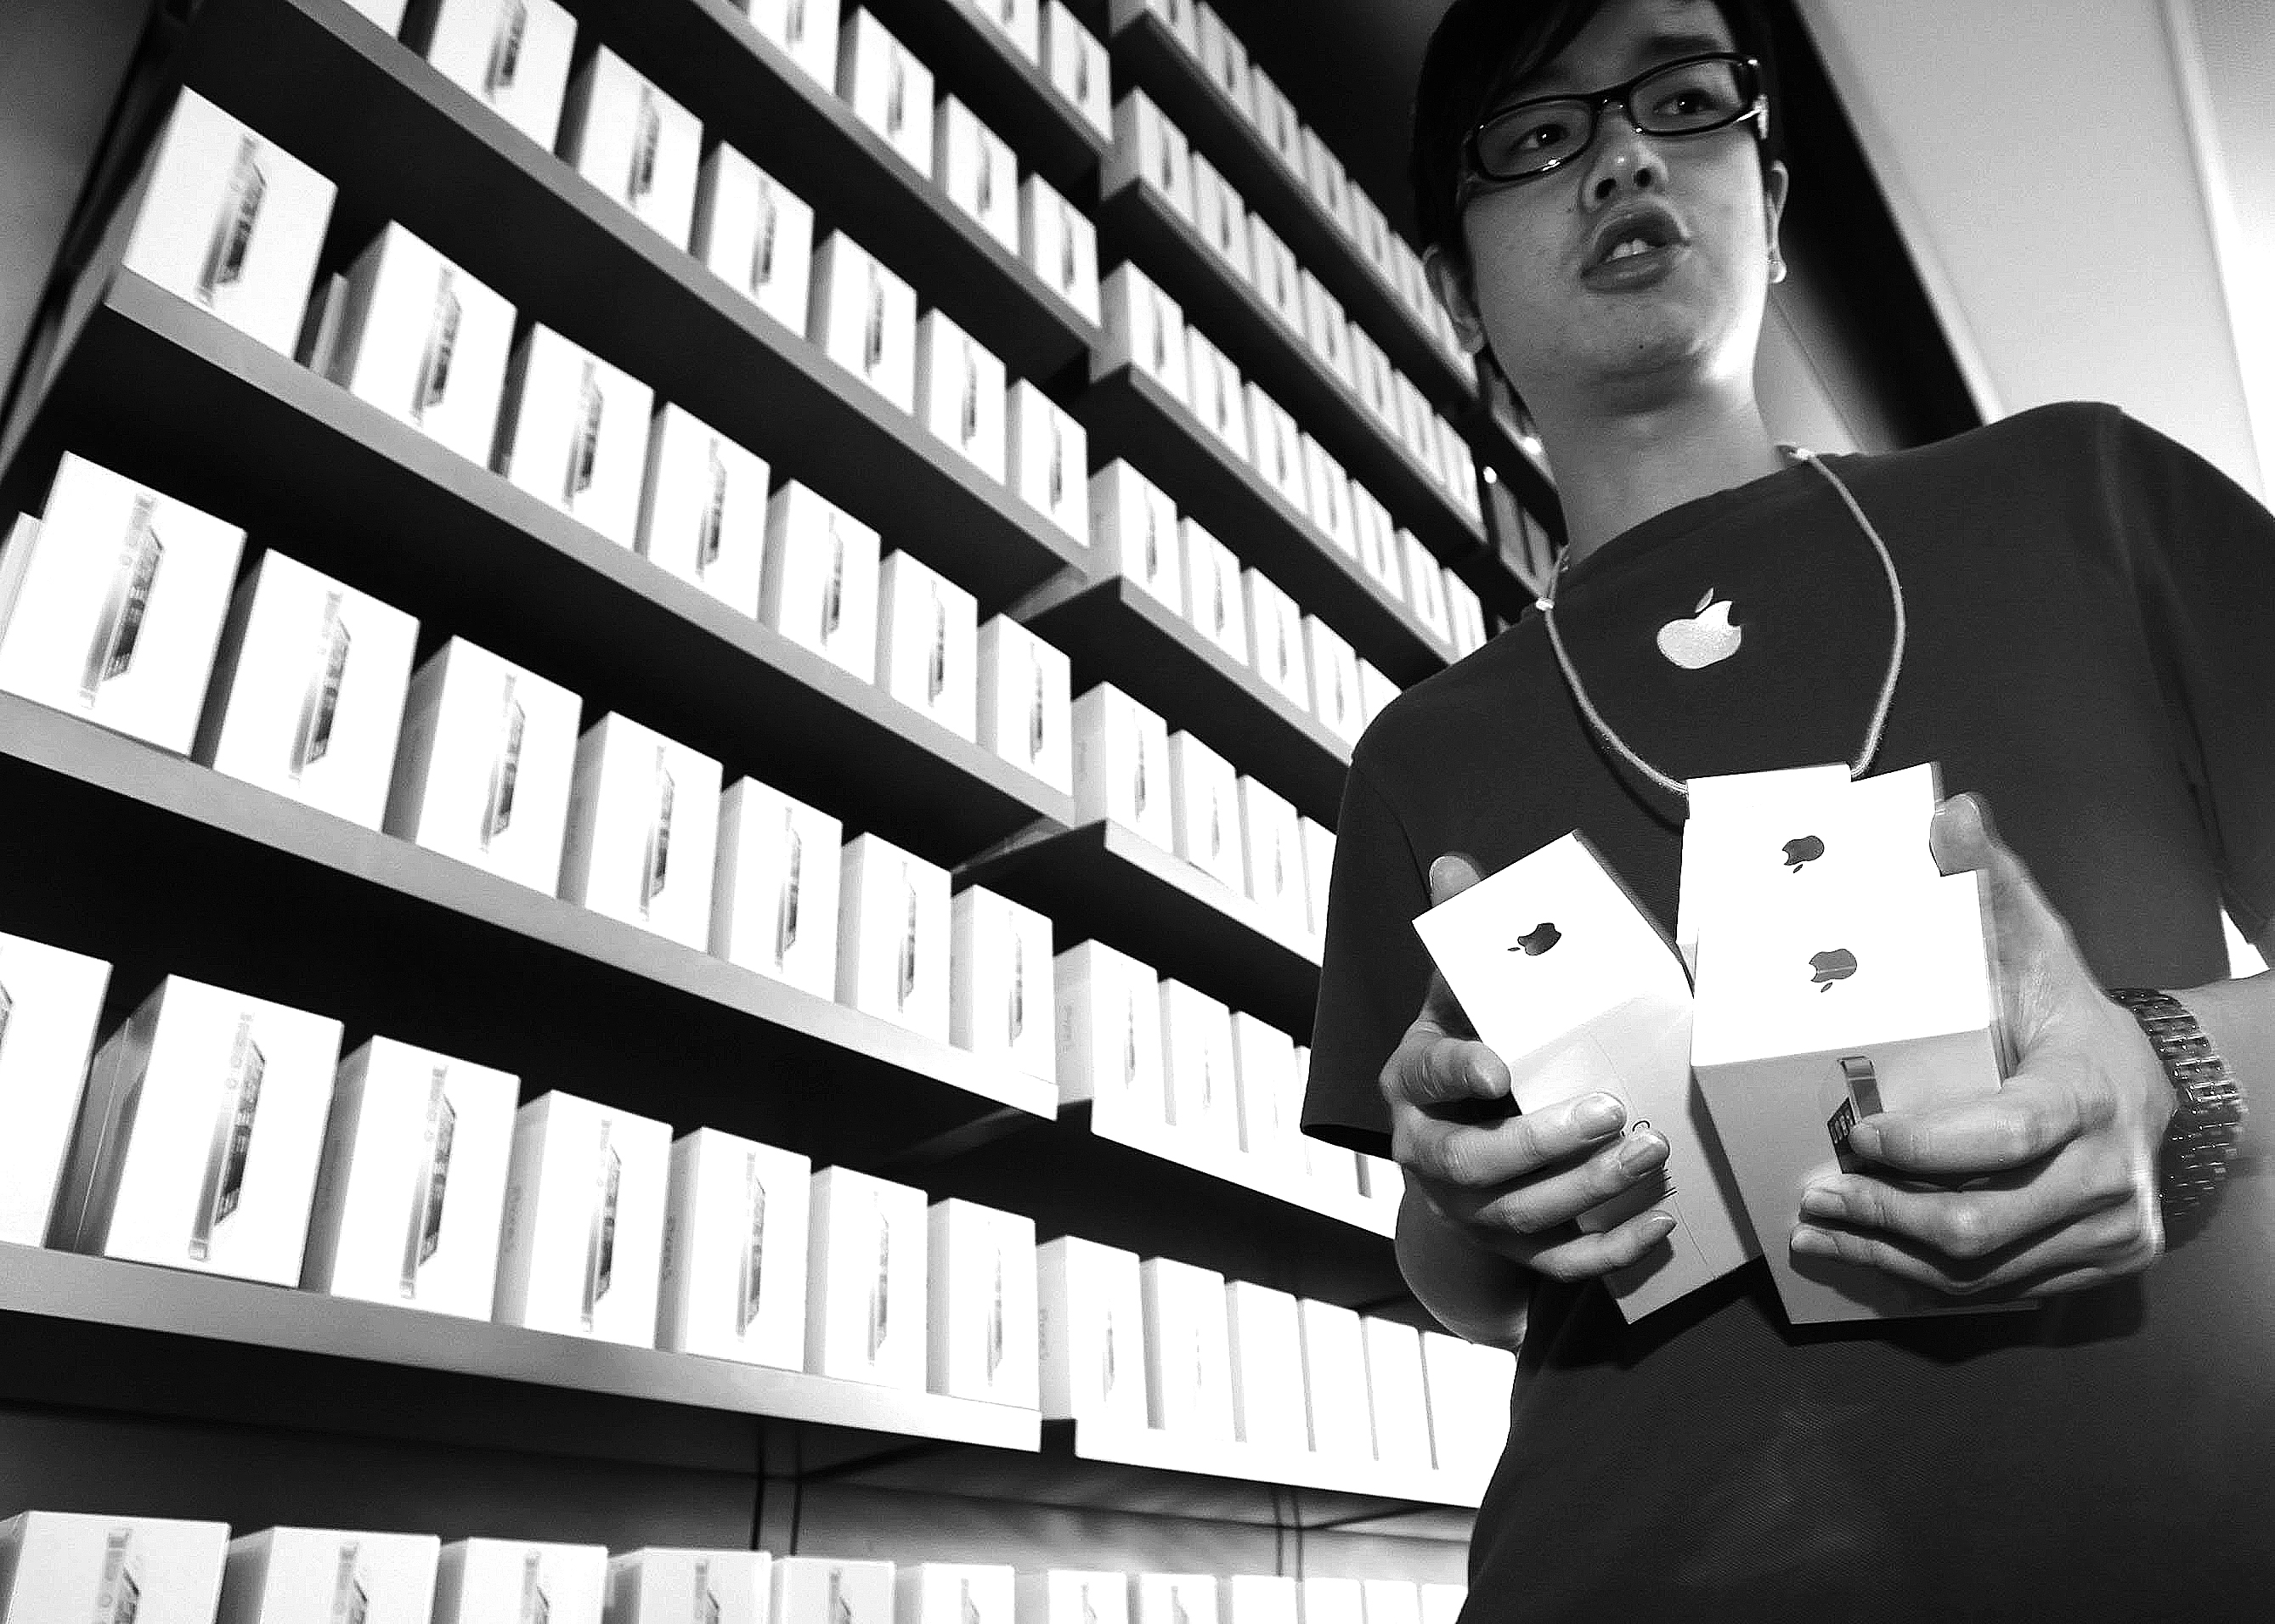 Apple store worker brings iPhone 5s to customers in Hong Kong as company prepares to expand its market by 22 countries this week. Friday, the phone debuted in the United States and eight other countries but exceeded last year's iPhone 4S launch by only a small margin.